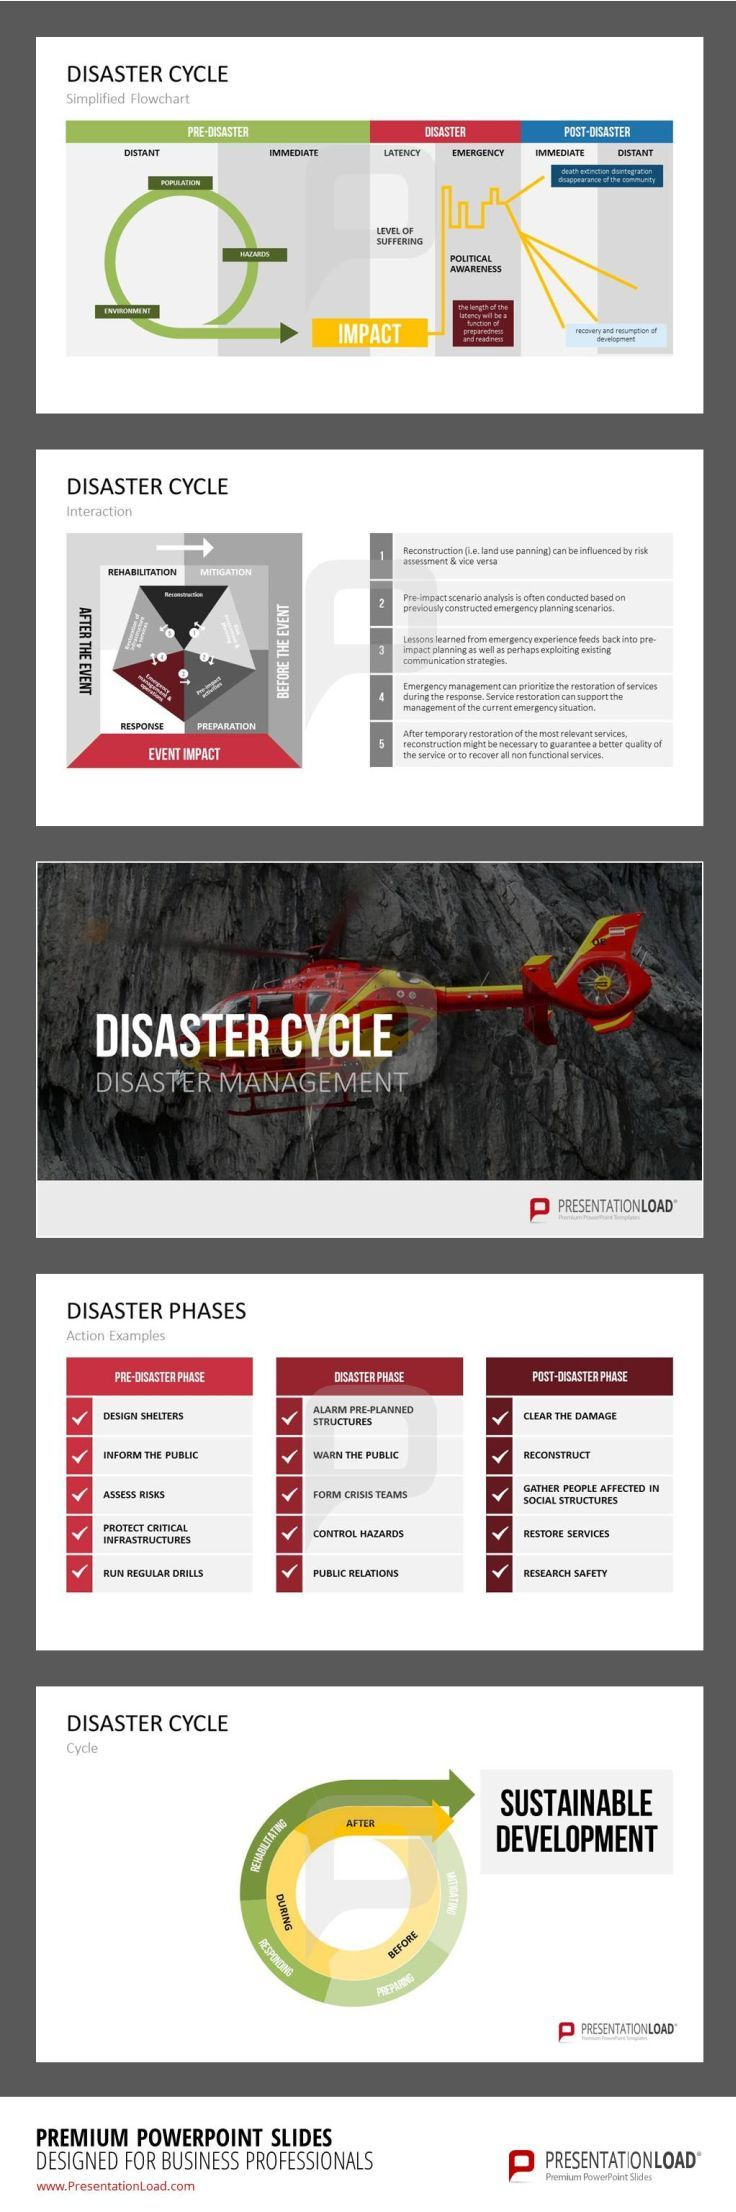 48 best reporting images on pinterest productivity business and disaster management should be organized as a cyclic set of management phases and actions that respond fandeluxe Choice Image